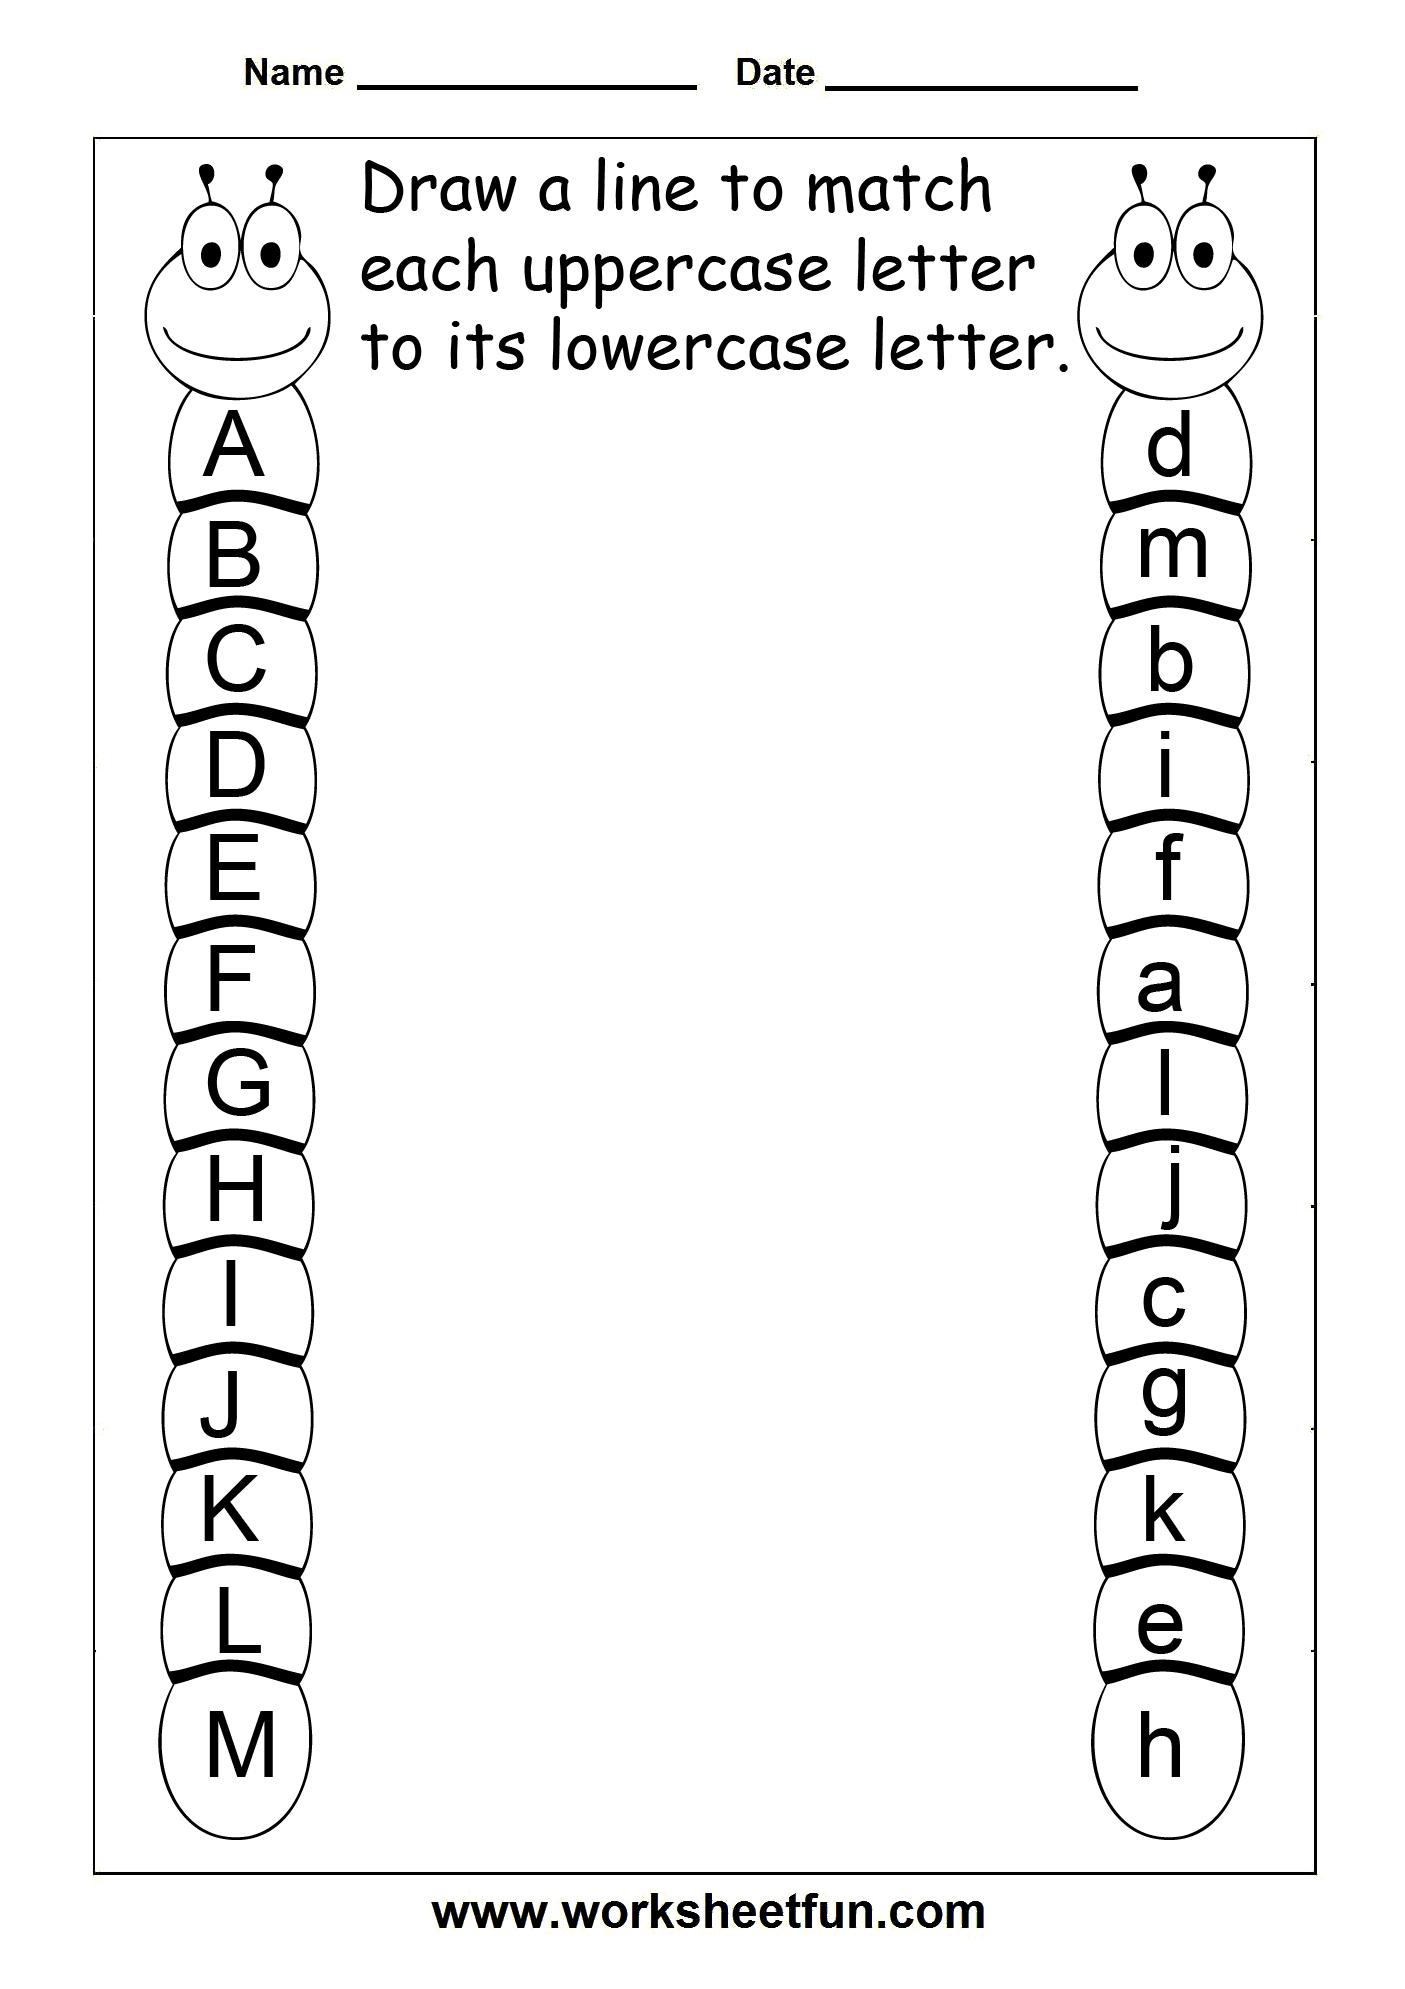 Free Worksheet Kindergarten Letter Recognition Worksheets 17 best images about letters on pinterest alphabet words plays and preschool worksheets